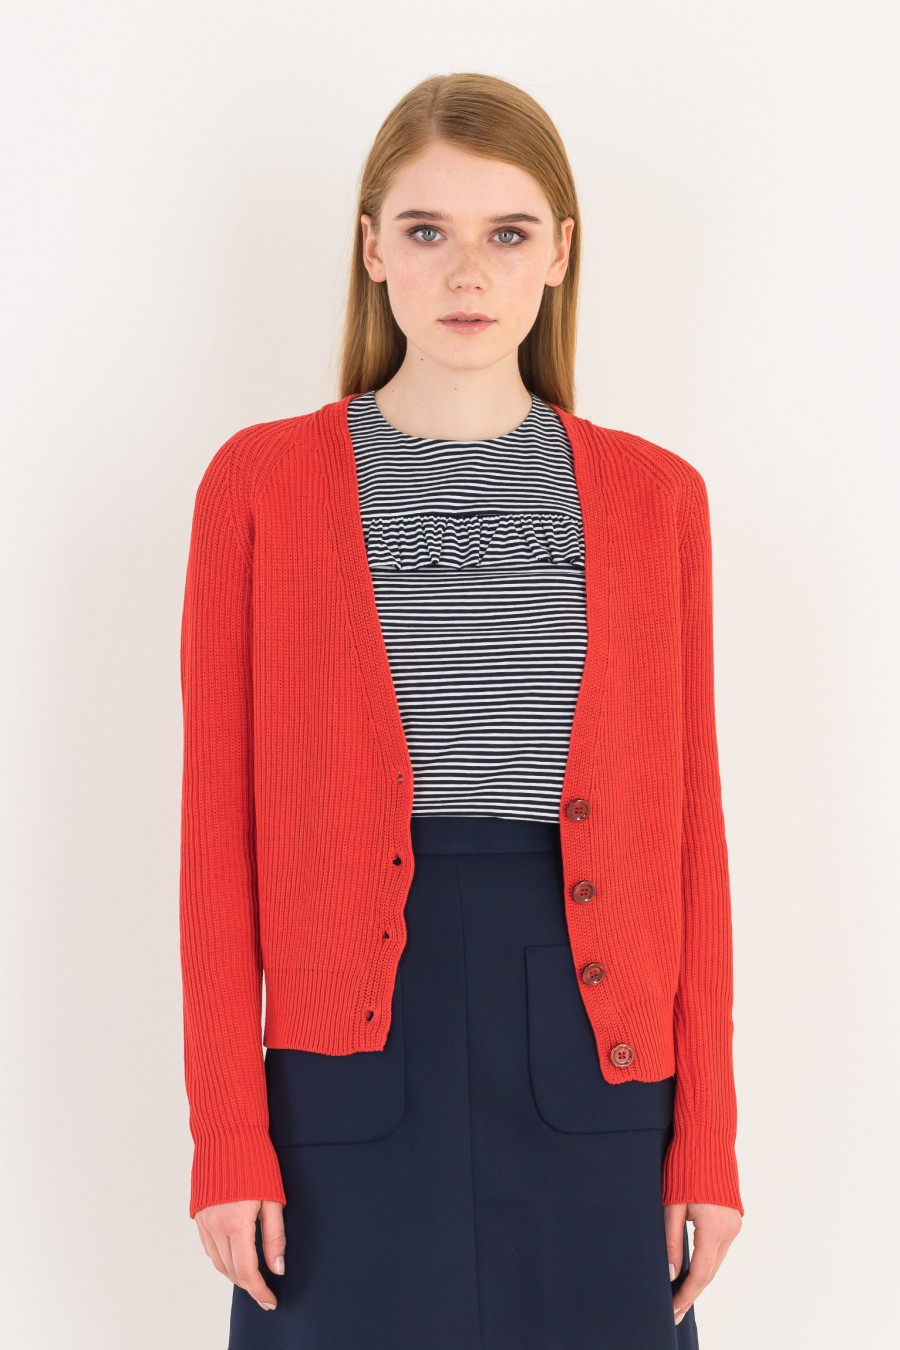 Red cardigan with buttons